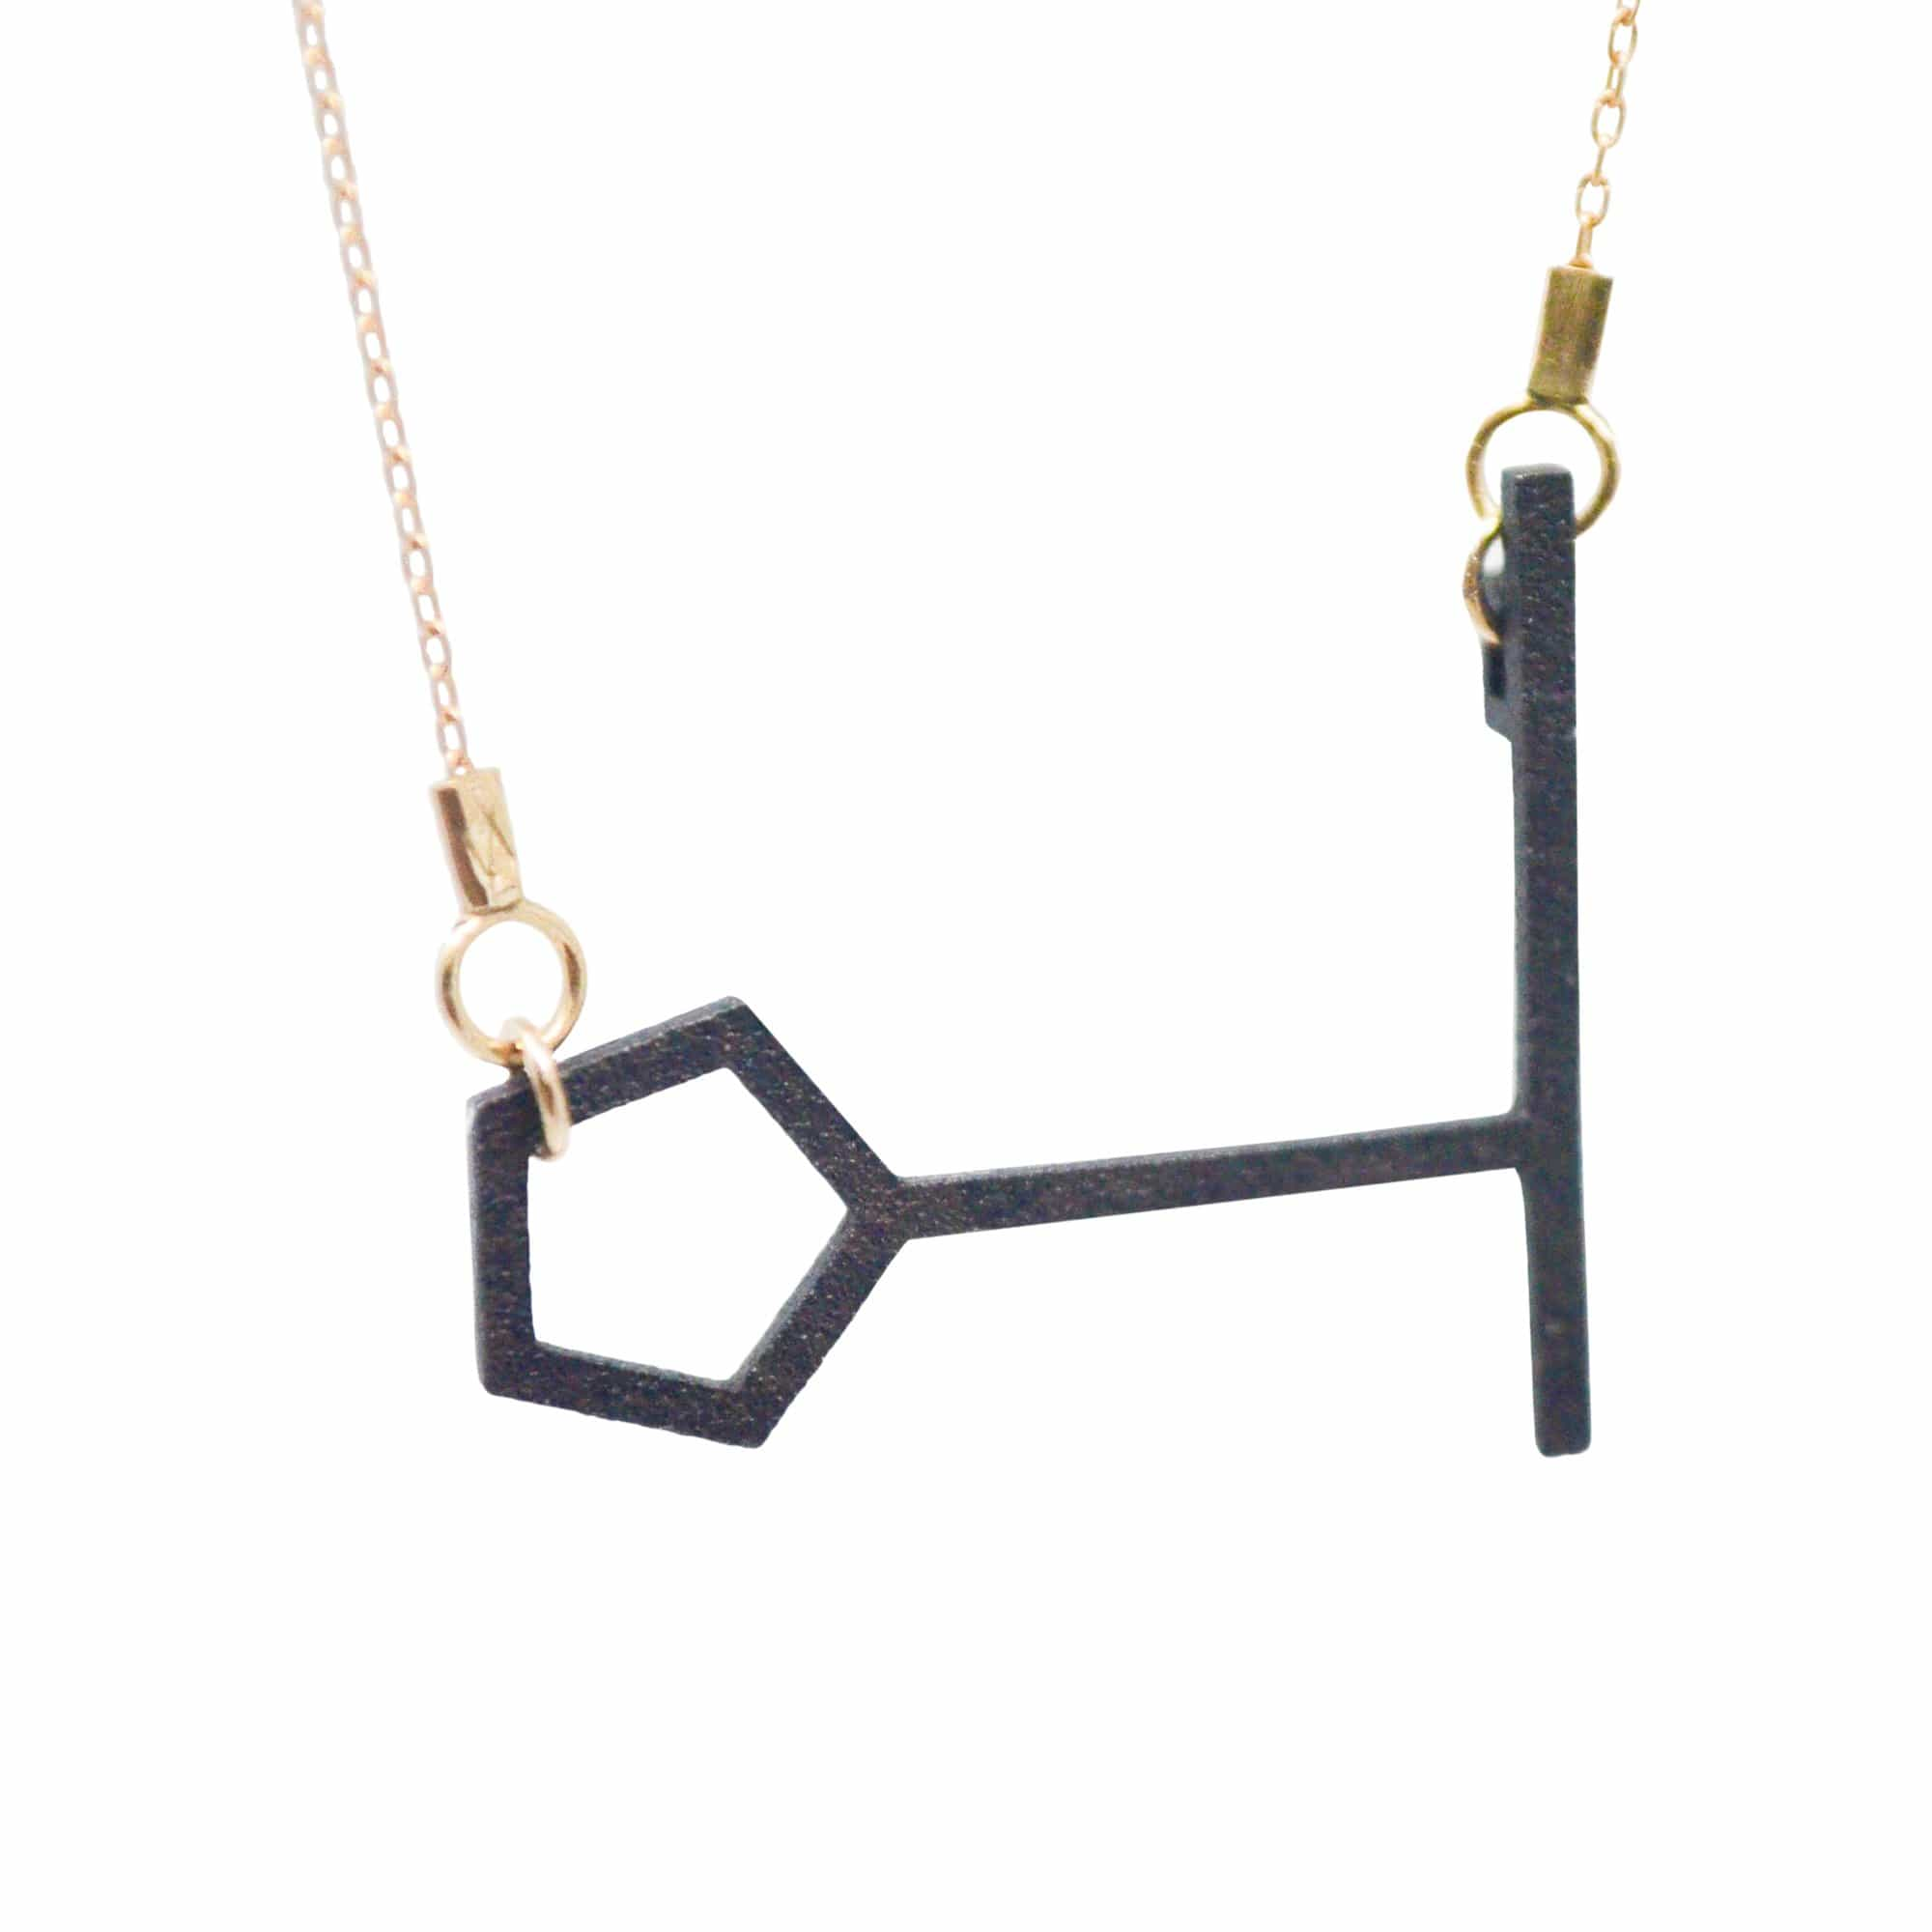 Penta Small Necklace